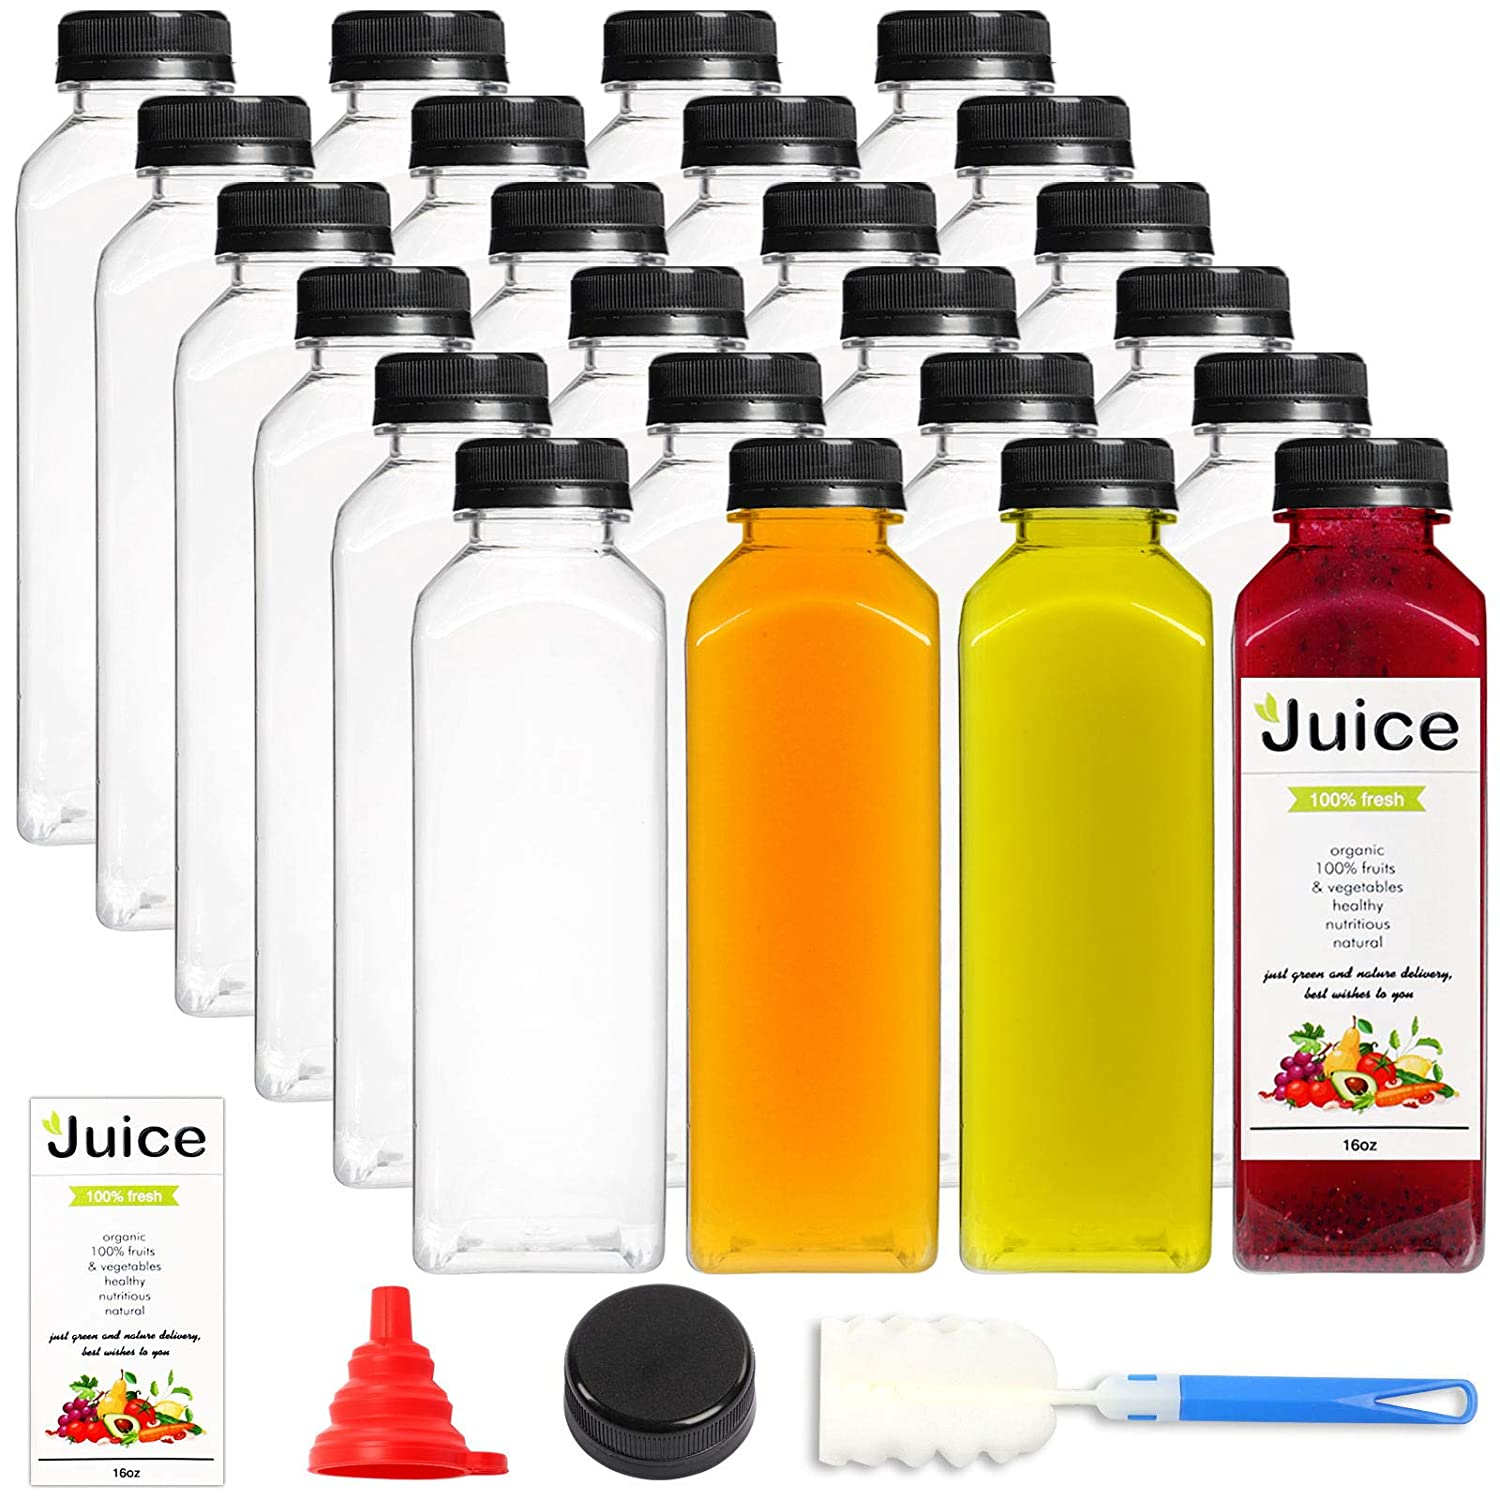 24pcs 16oz Empty Plastic Juice Bottles with Caps, Reusable Clear Bulk Beverage Containers for Juice, Milk and Other Beverages